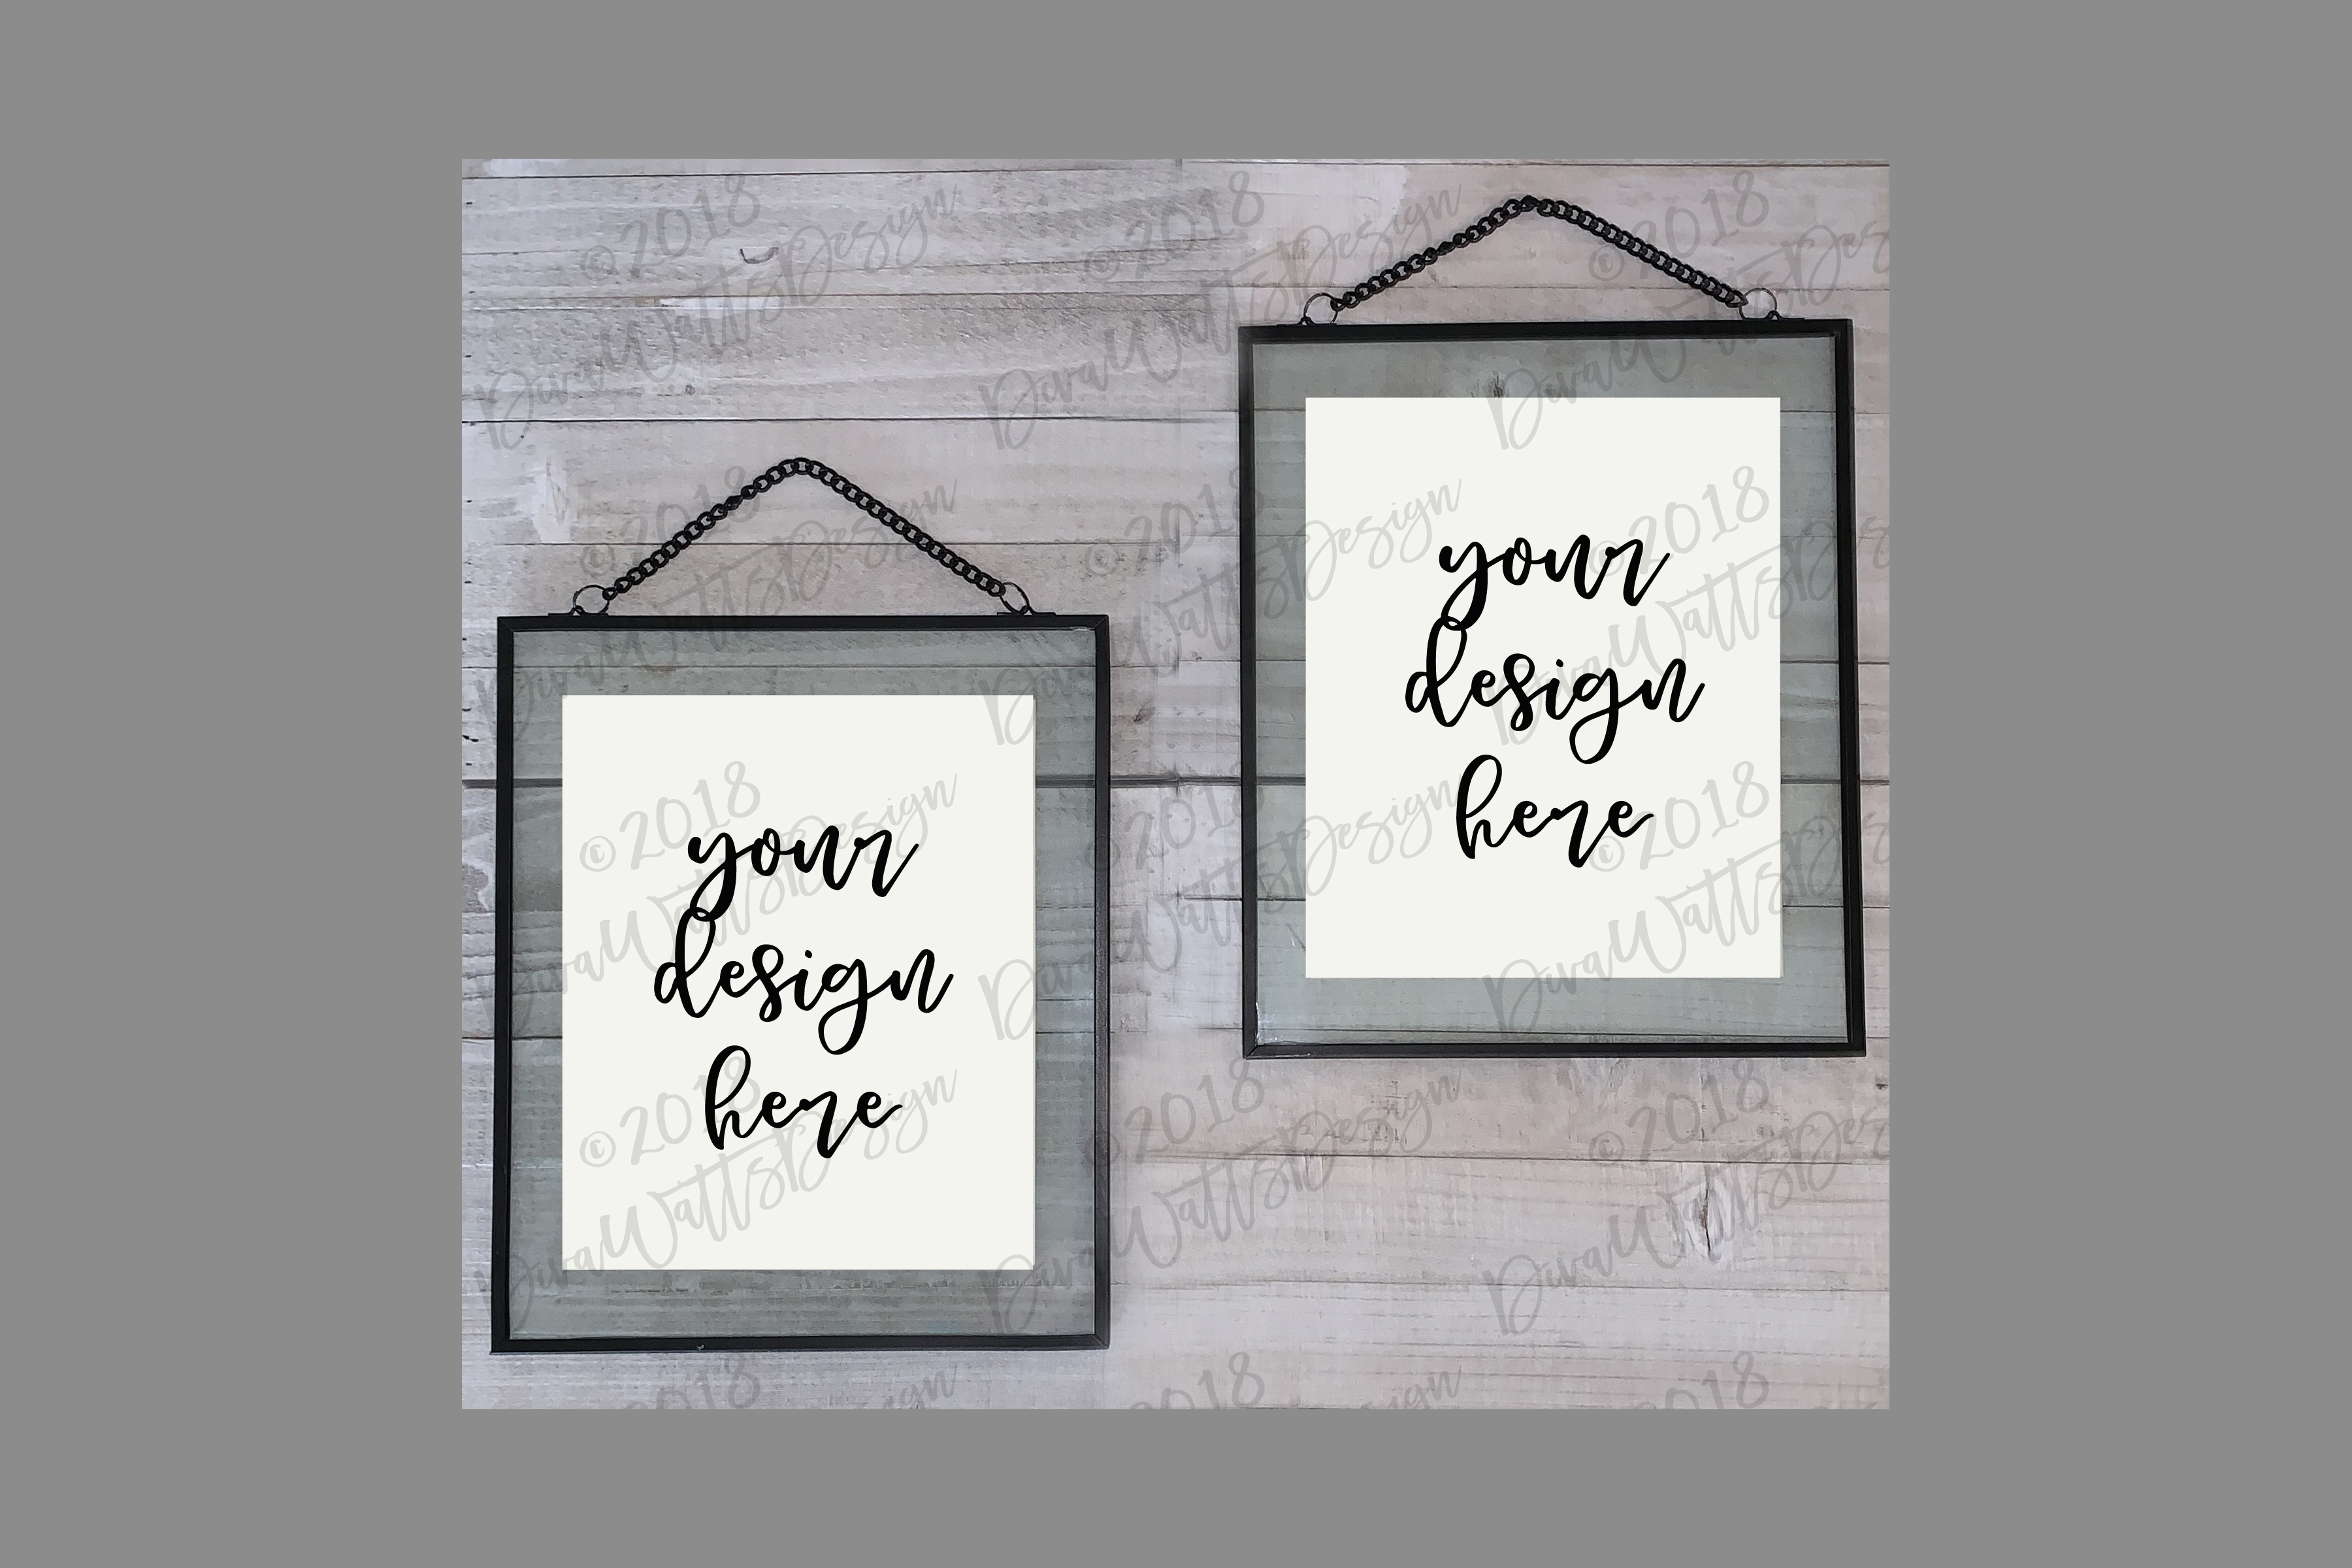 Floating Frames White Duo Graphic By Diva Watts Designs Creative Fabrica